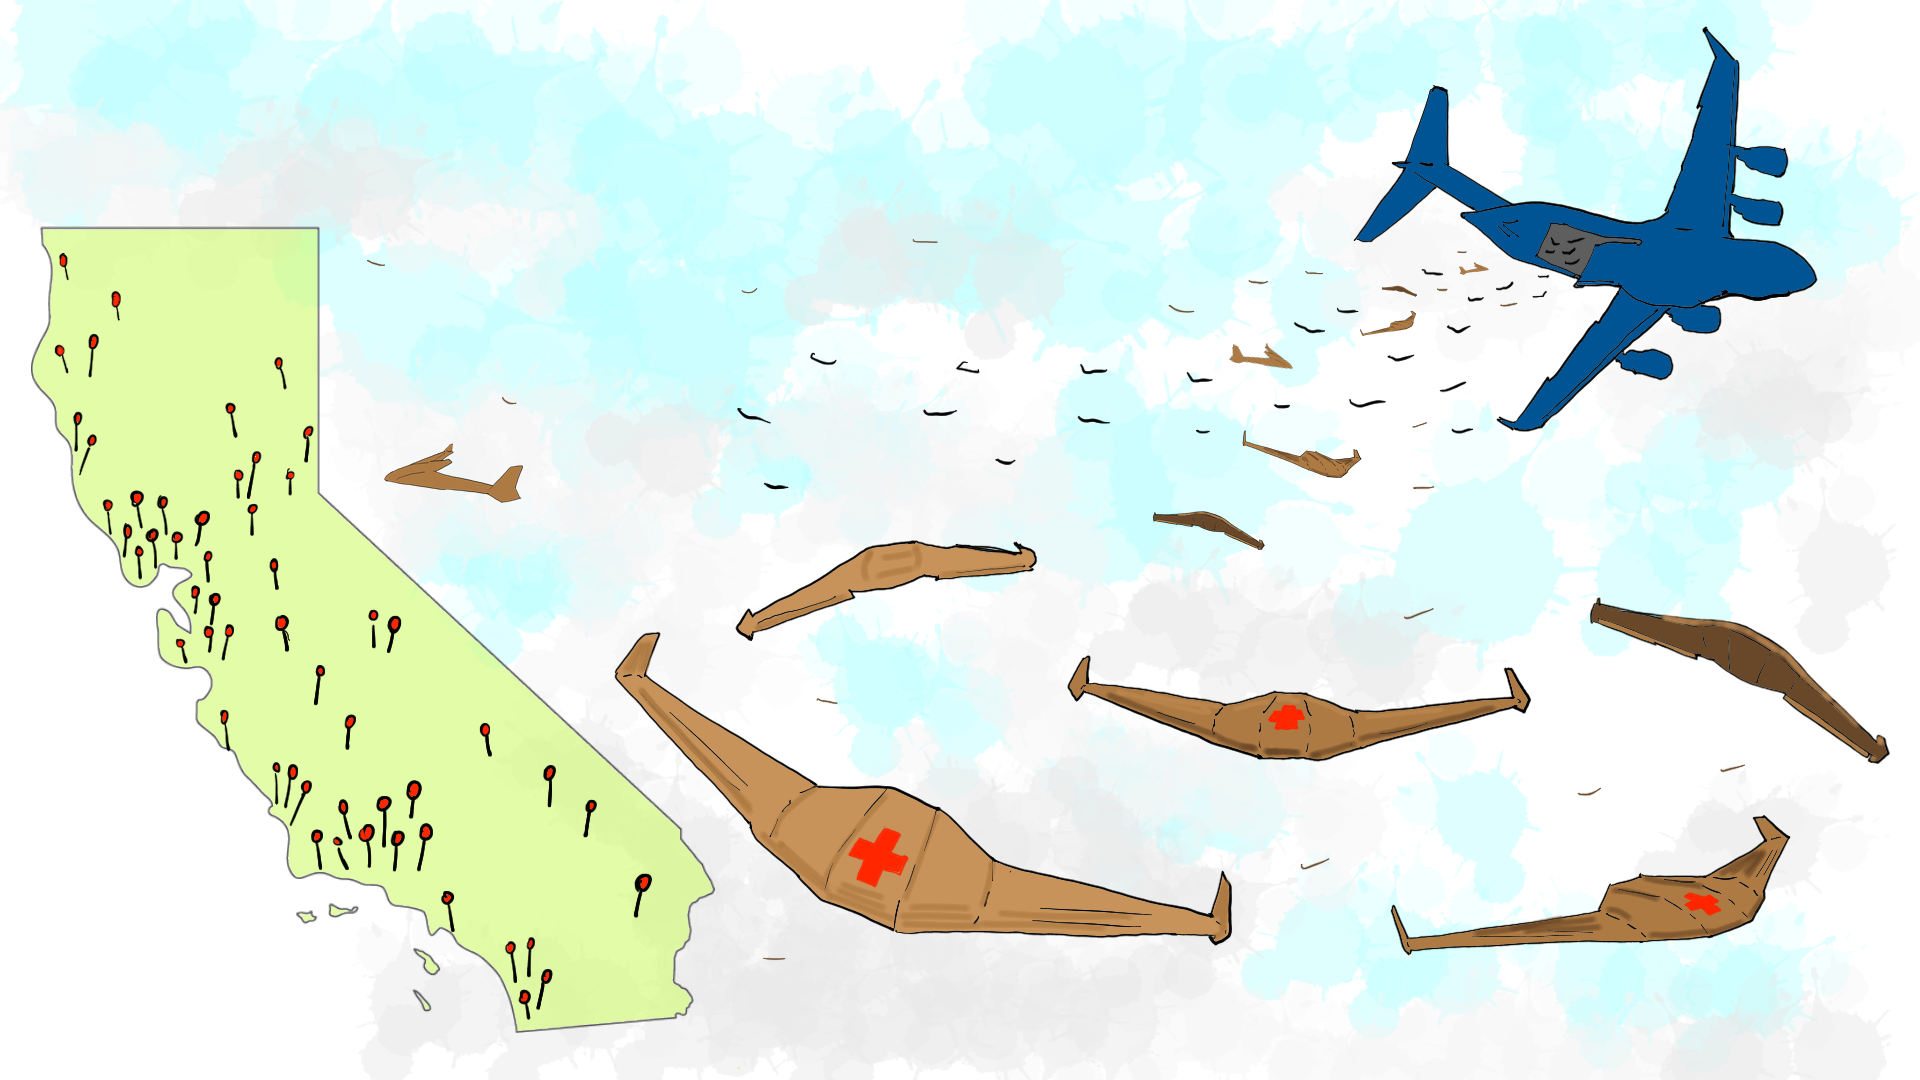 A drawing of gliders launched from a plane